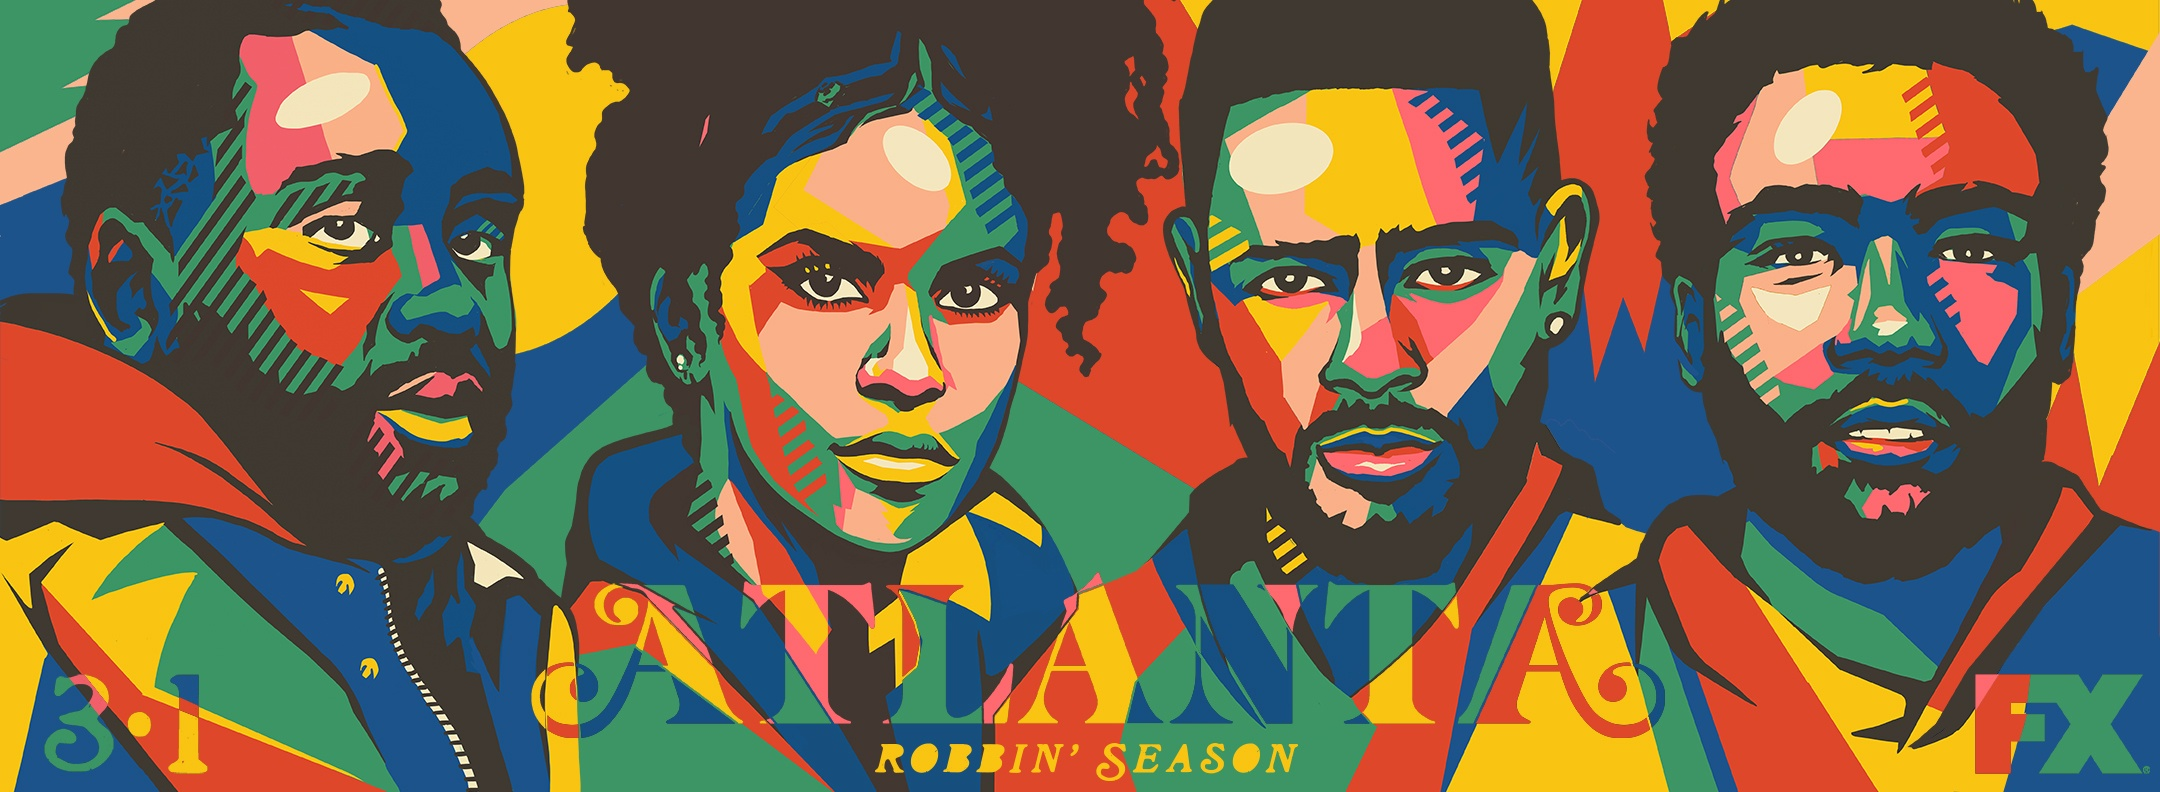 Thumbnail for Atlanta Robbin' Season Mural